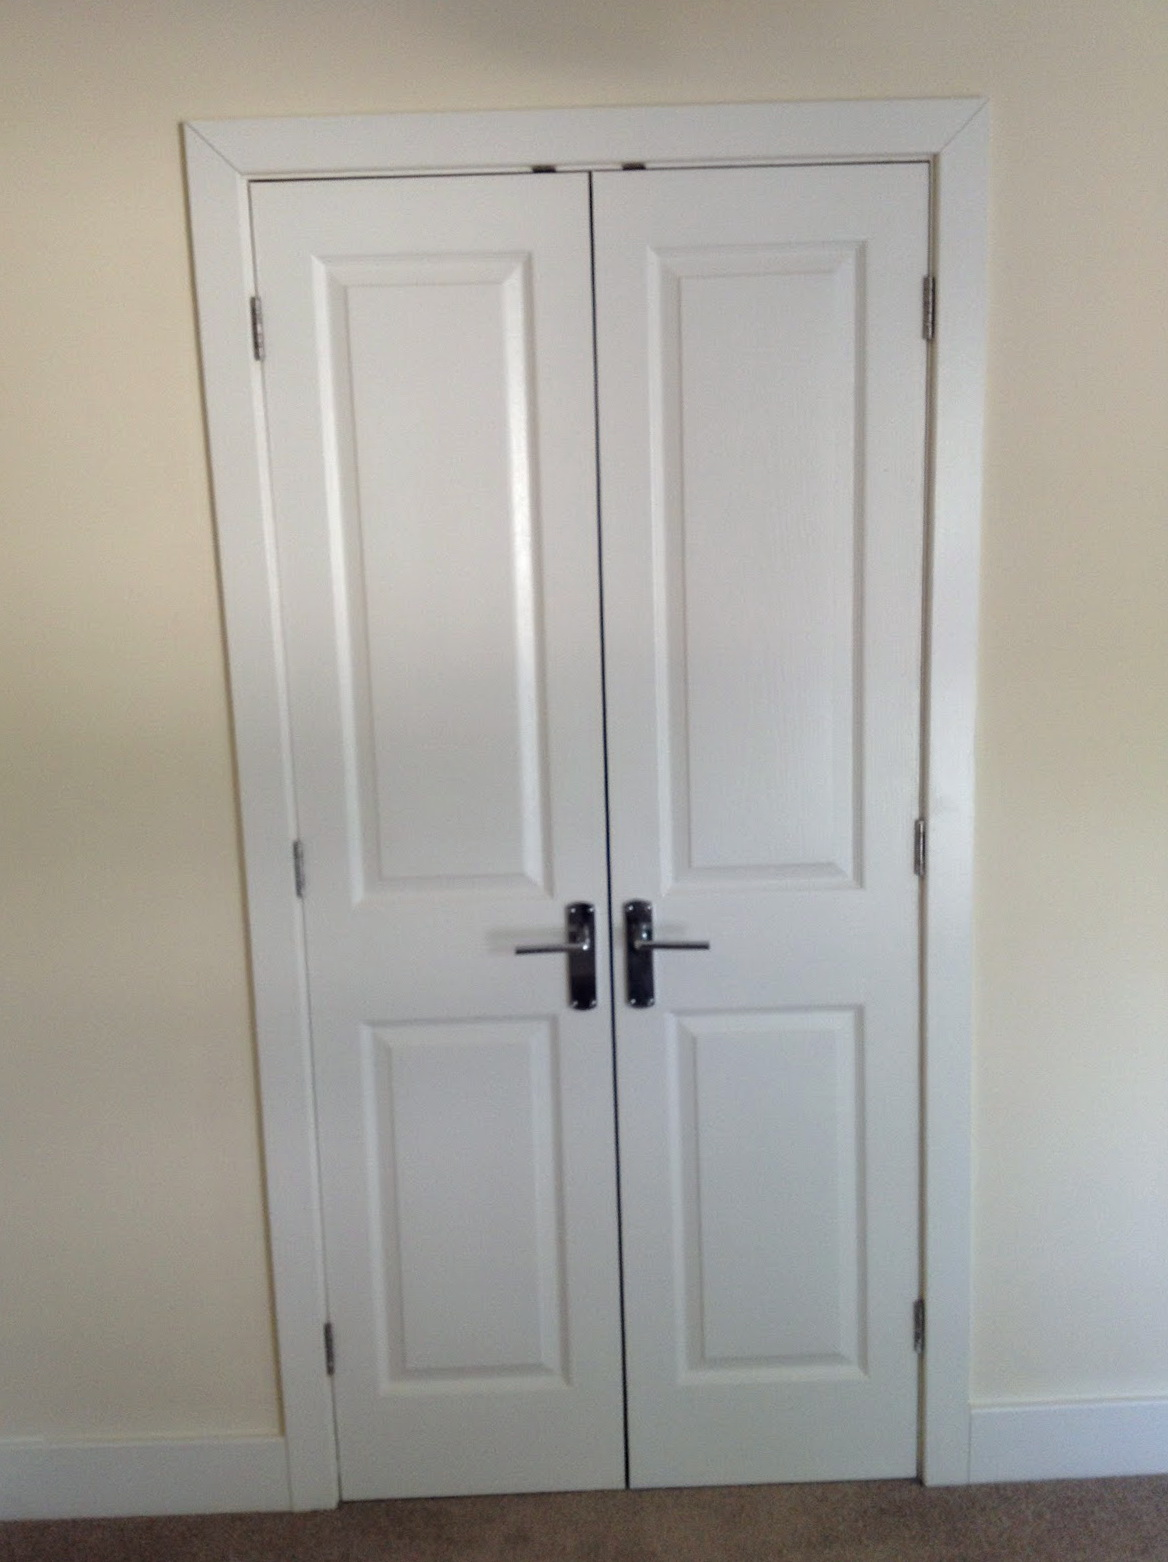 Folding Closet Door Sizes Home Design Ideas